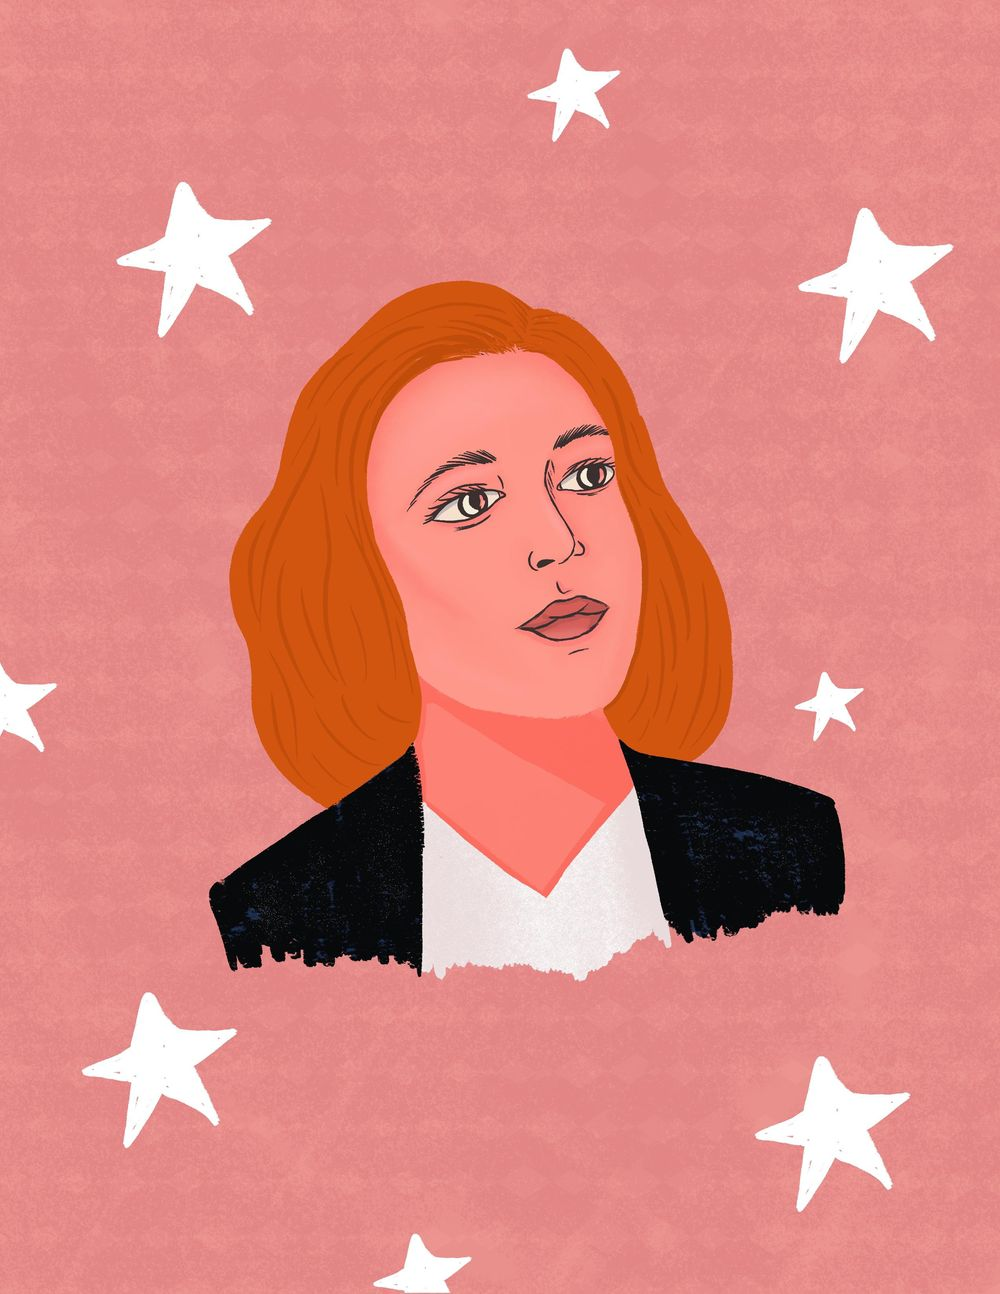 Scully - image 1 - student project